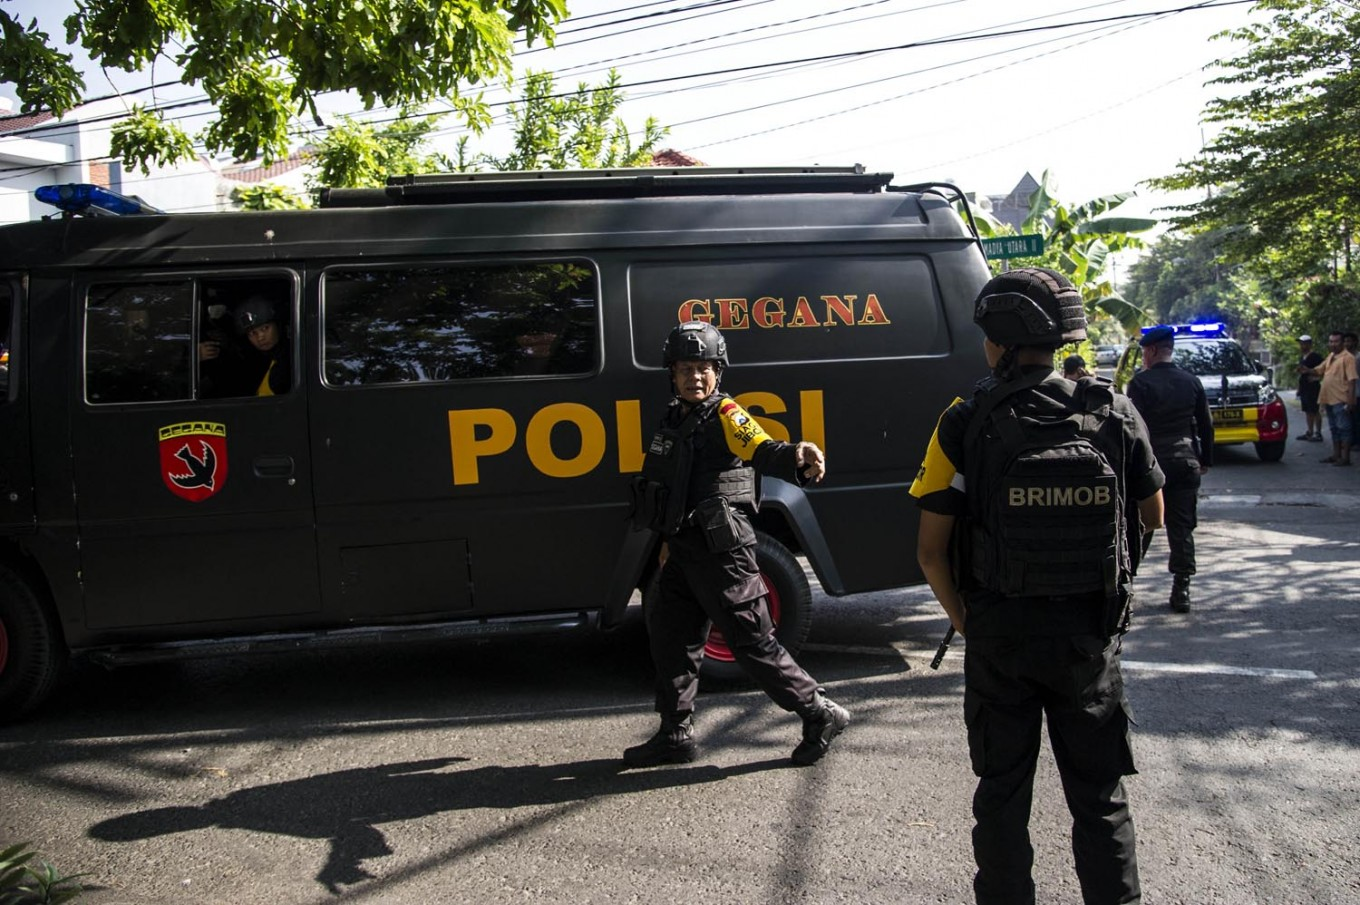 Indonesian policemen patrol outside a church following a suicide bomb in Surabaya on May 13, 2018. At least two people were killed and 13 others injured in bomb attacks, including a suicide blast, targeting churches in Indonesia's second biggest city Surabaya, police said. AFP/ Juni Kriswanto